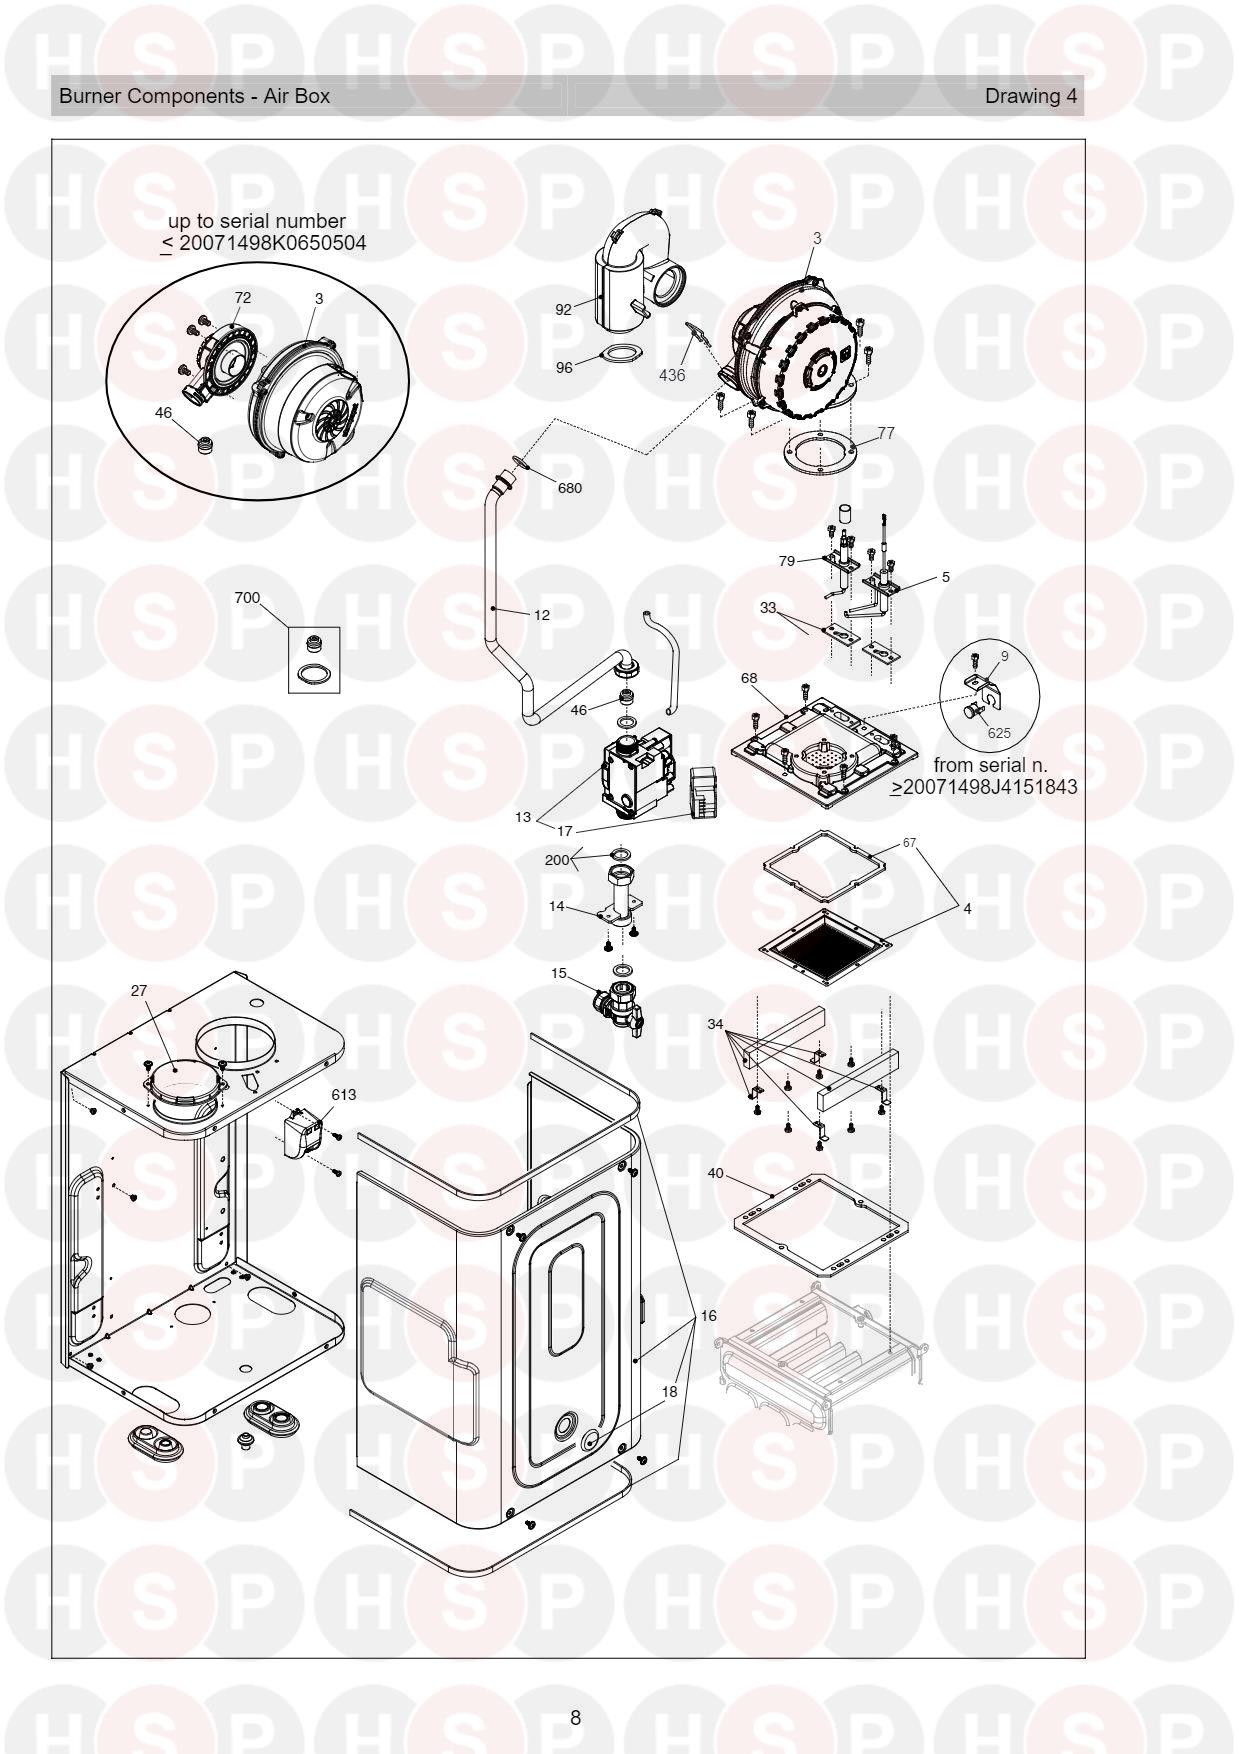 Burner Air Box diagram for Vokera Compact 25A Rev 7 (06/2016)